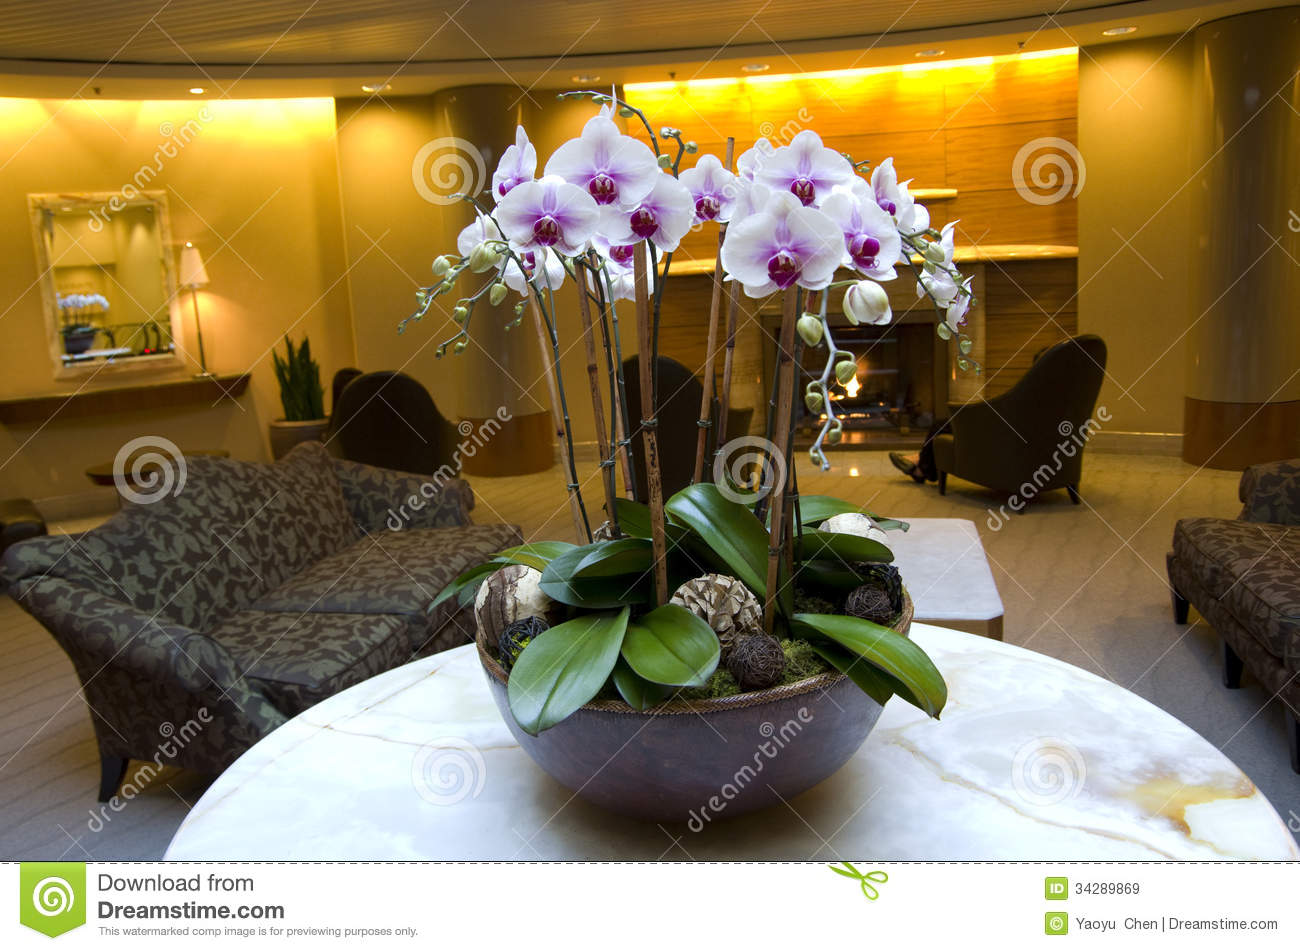 Business Building And Hotel Lobby Stock Image  Image